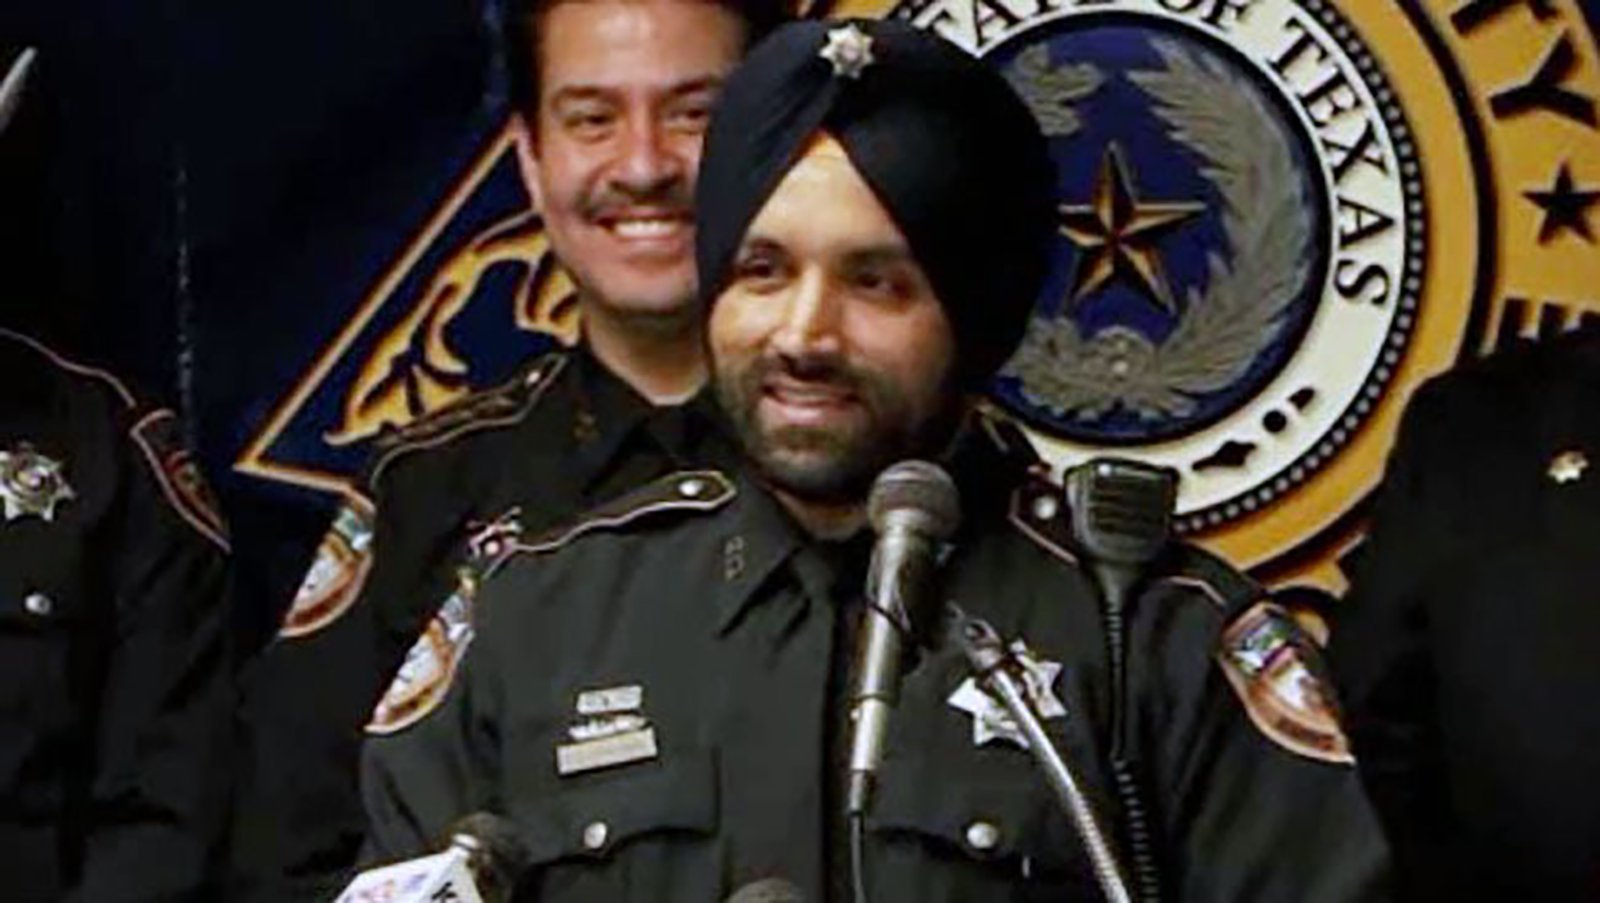 Houston Police Department honors fallen Sikh deputy by allowing officers to serve with their articles of faith